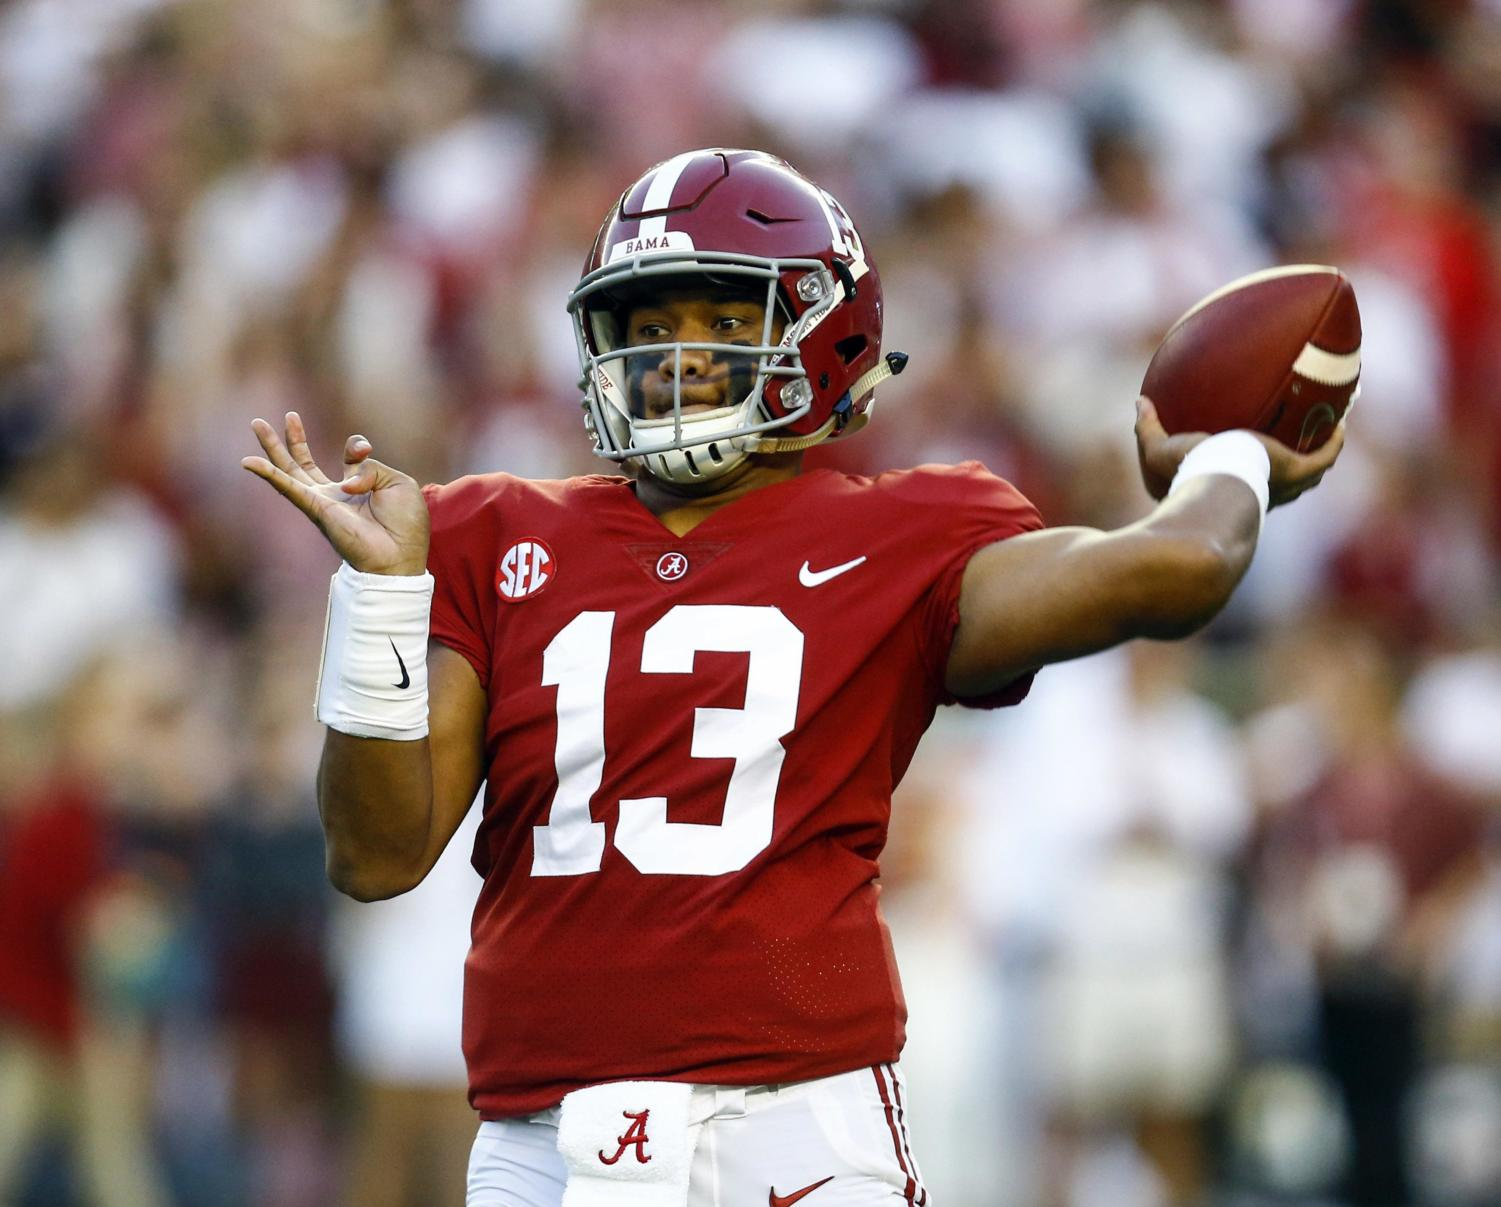 The biggest question in college football this year is if anybody can get to the level Tua Tagovailoa (pictured) and Alabama are playing at,